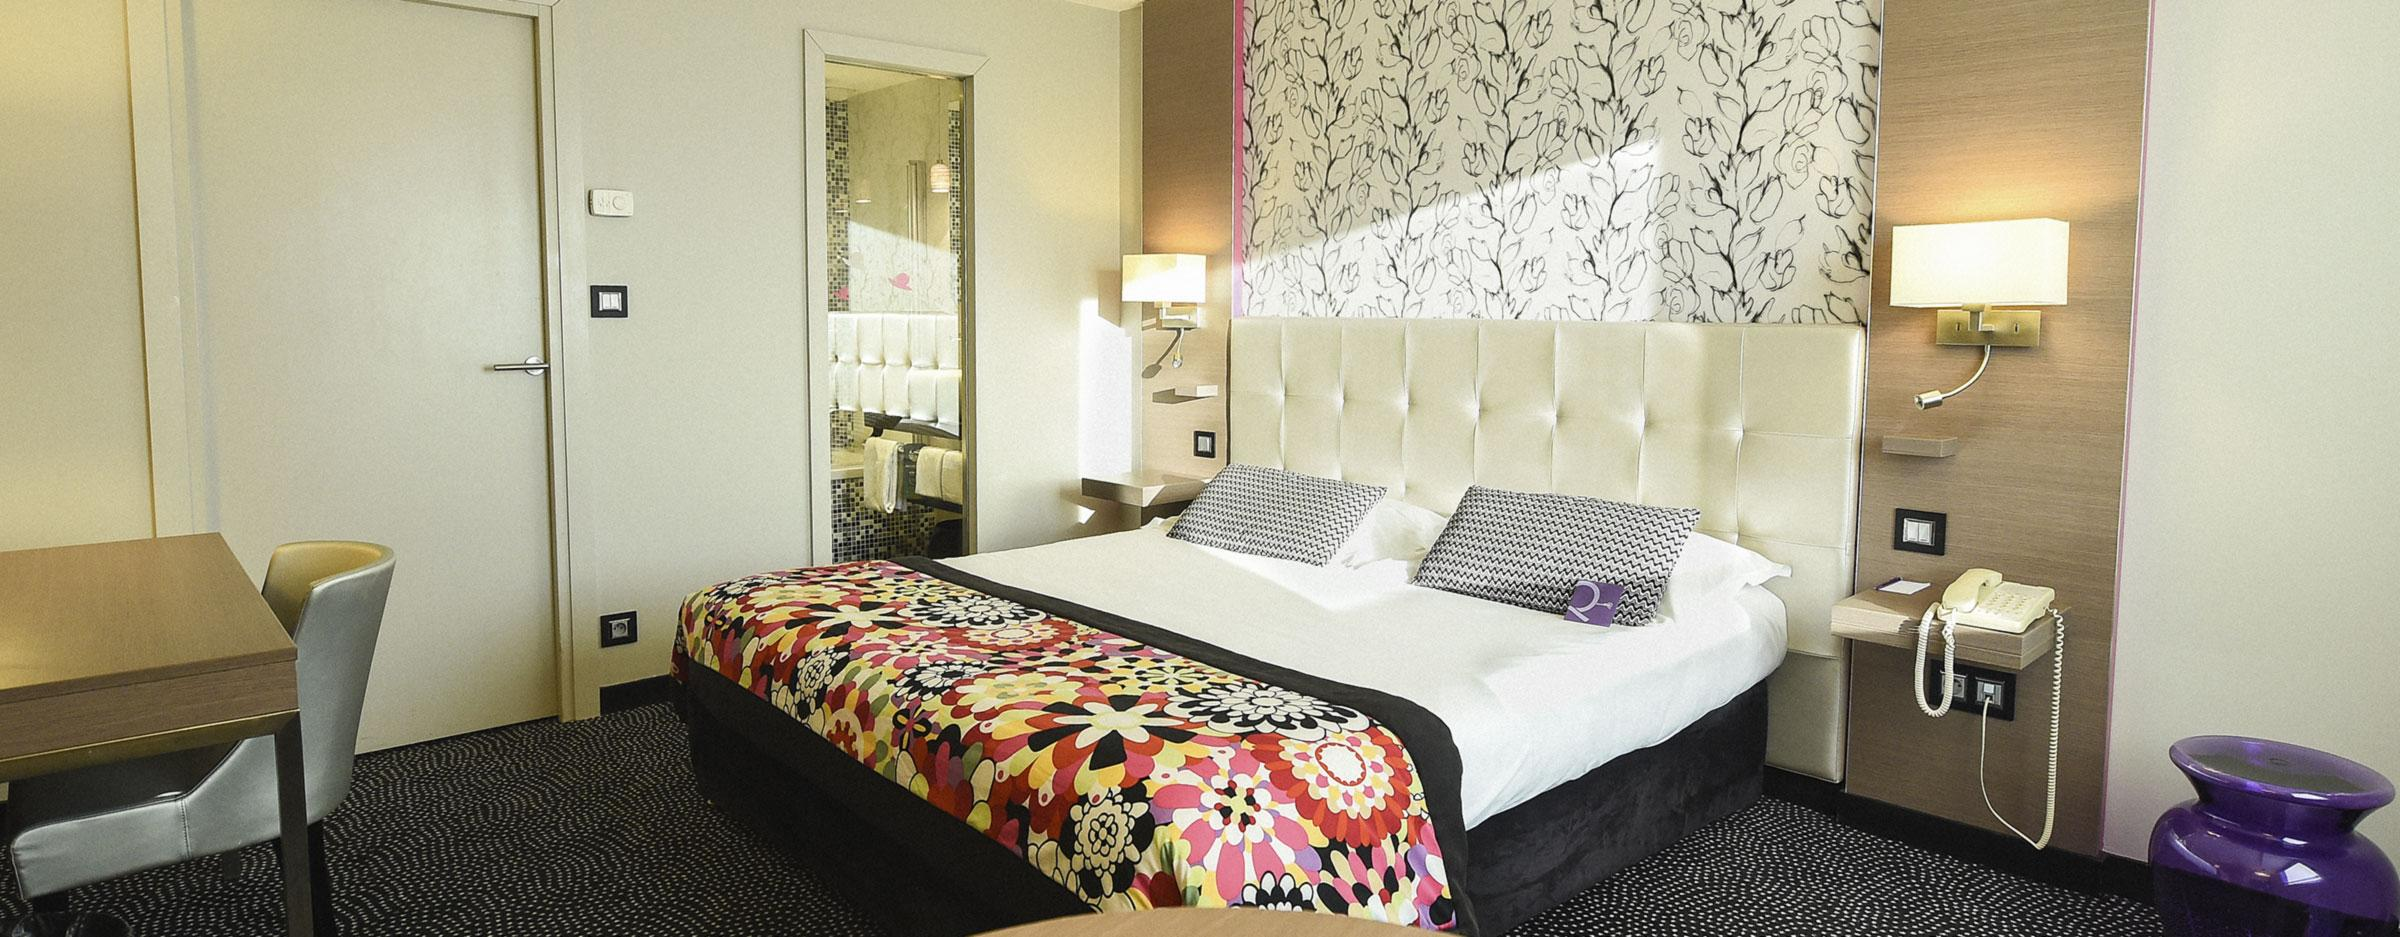 Mercure Dijon Room